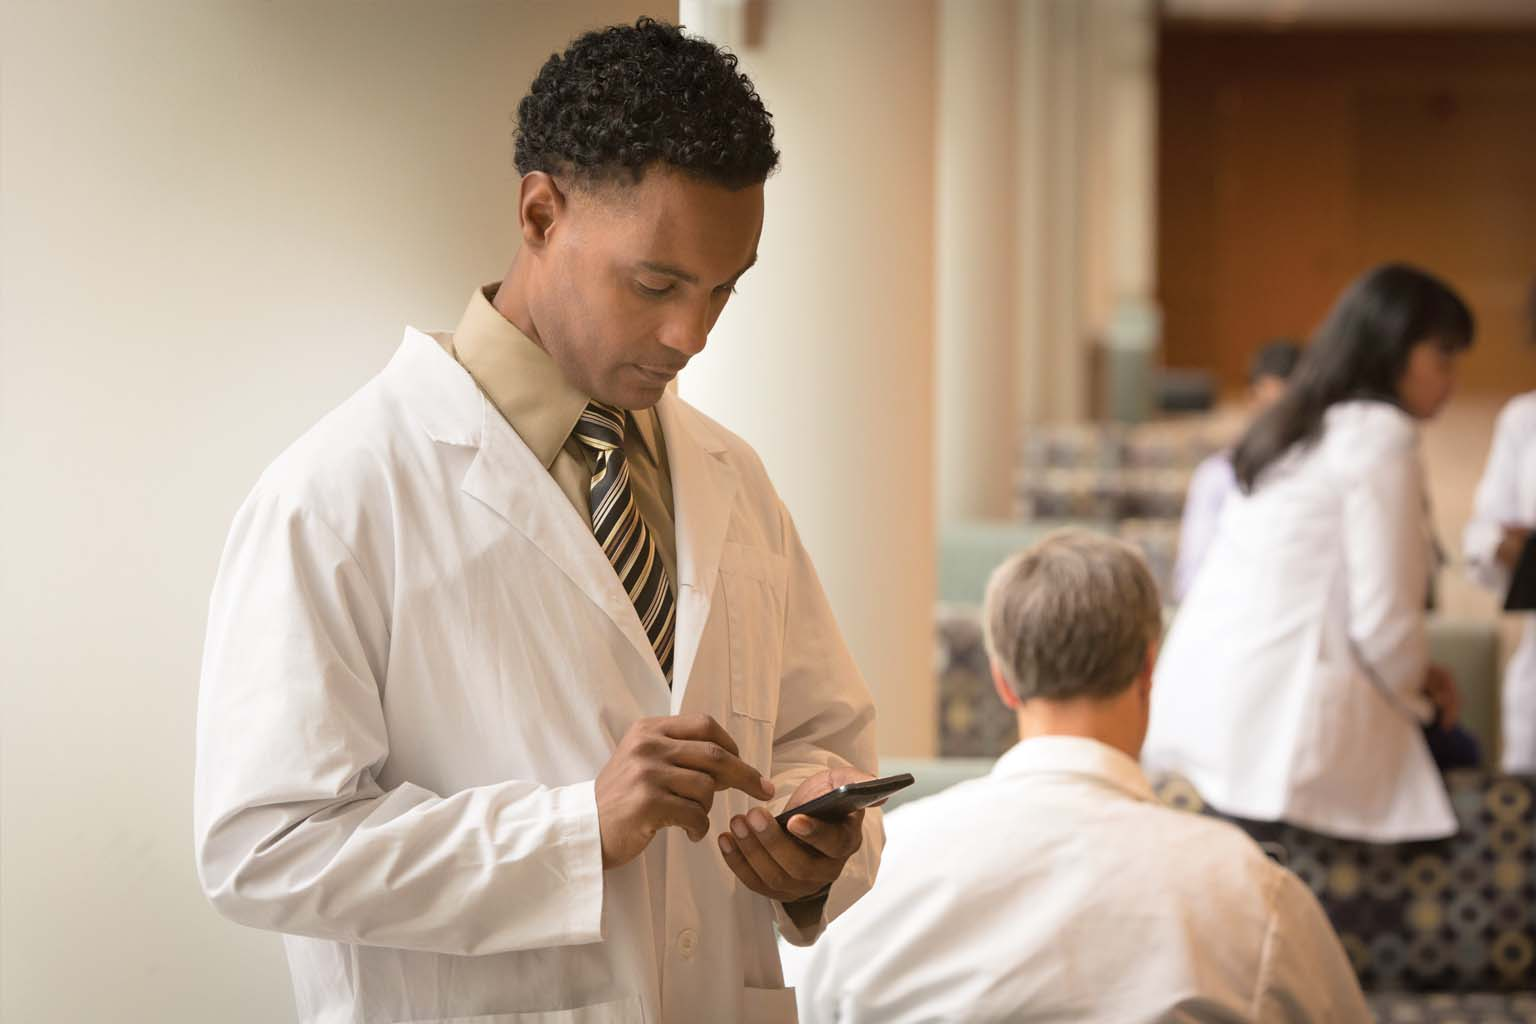 doctor reading information on smartphone